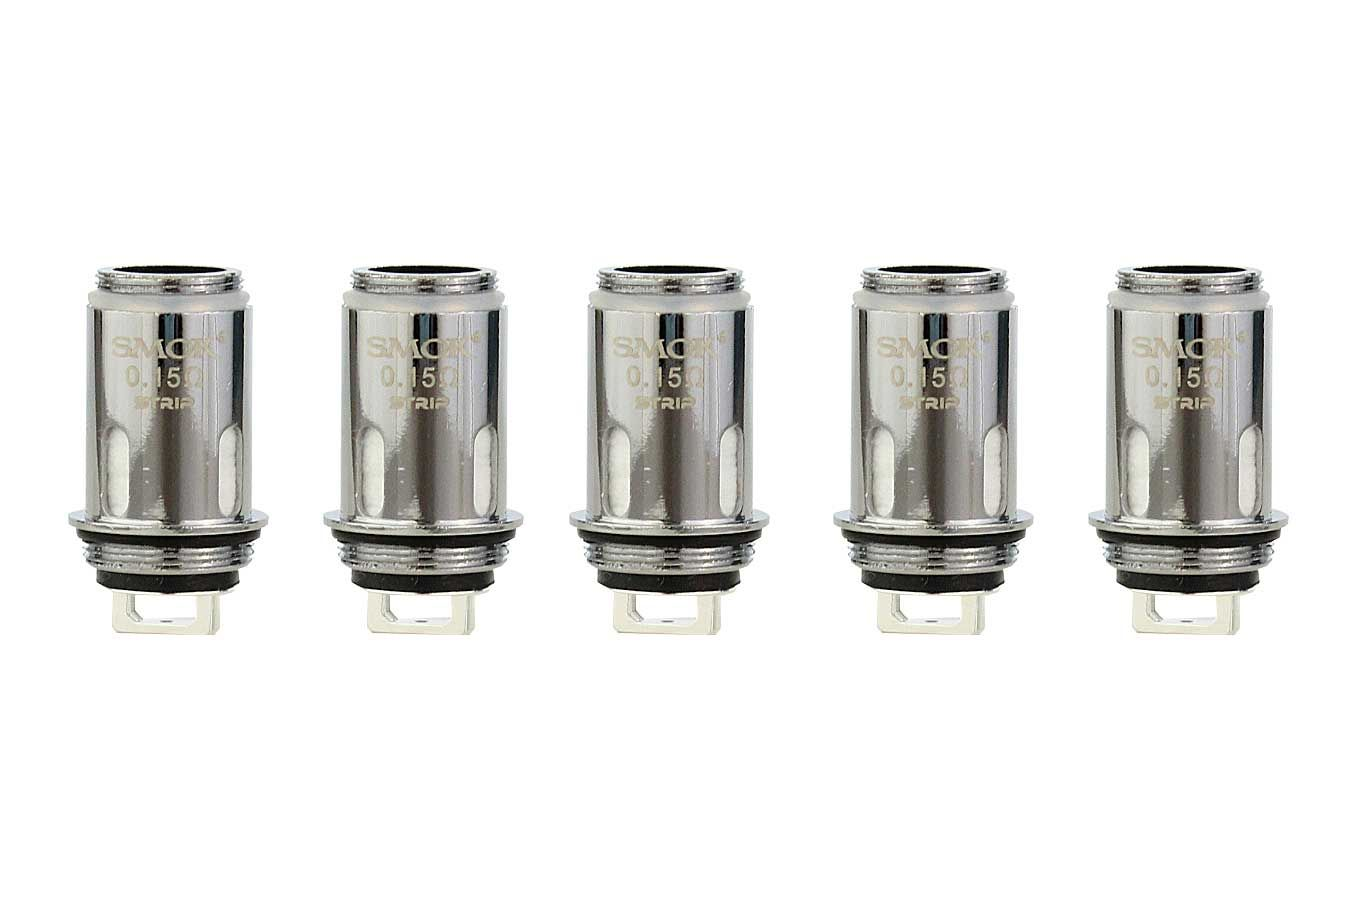 Smok Vape Pen 22 Light Strip Replacement Coil - 5 Pack